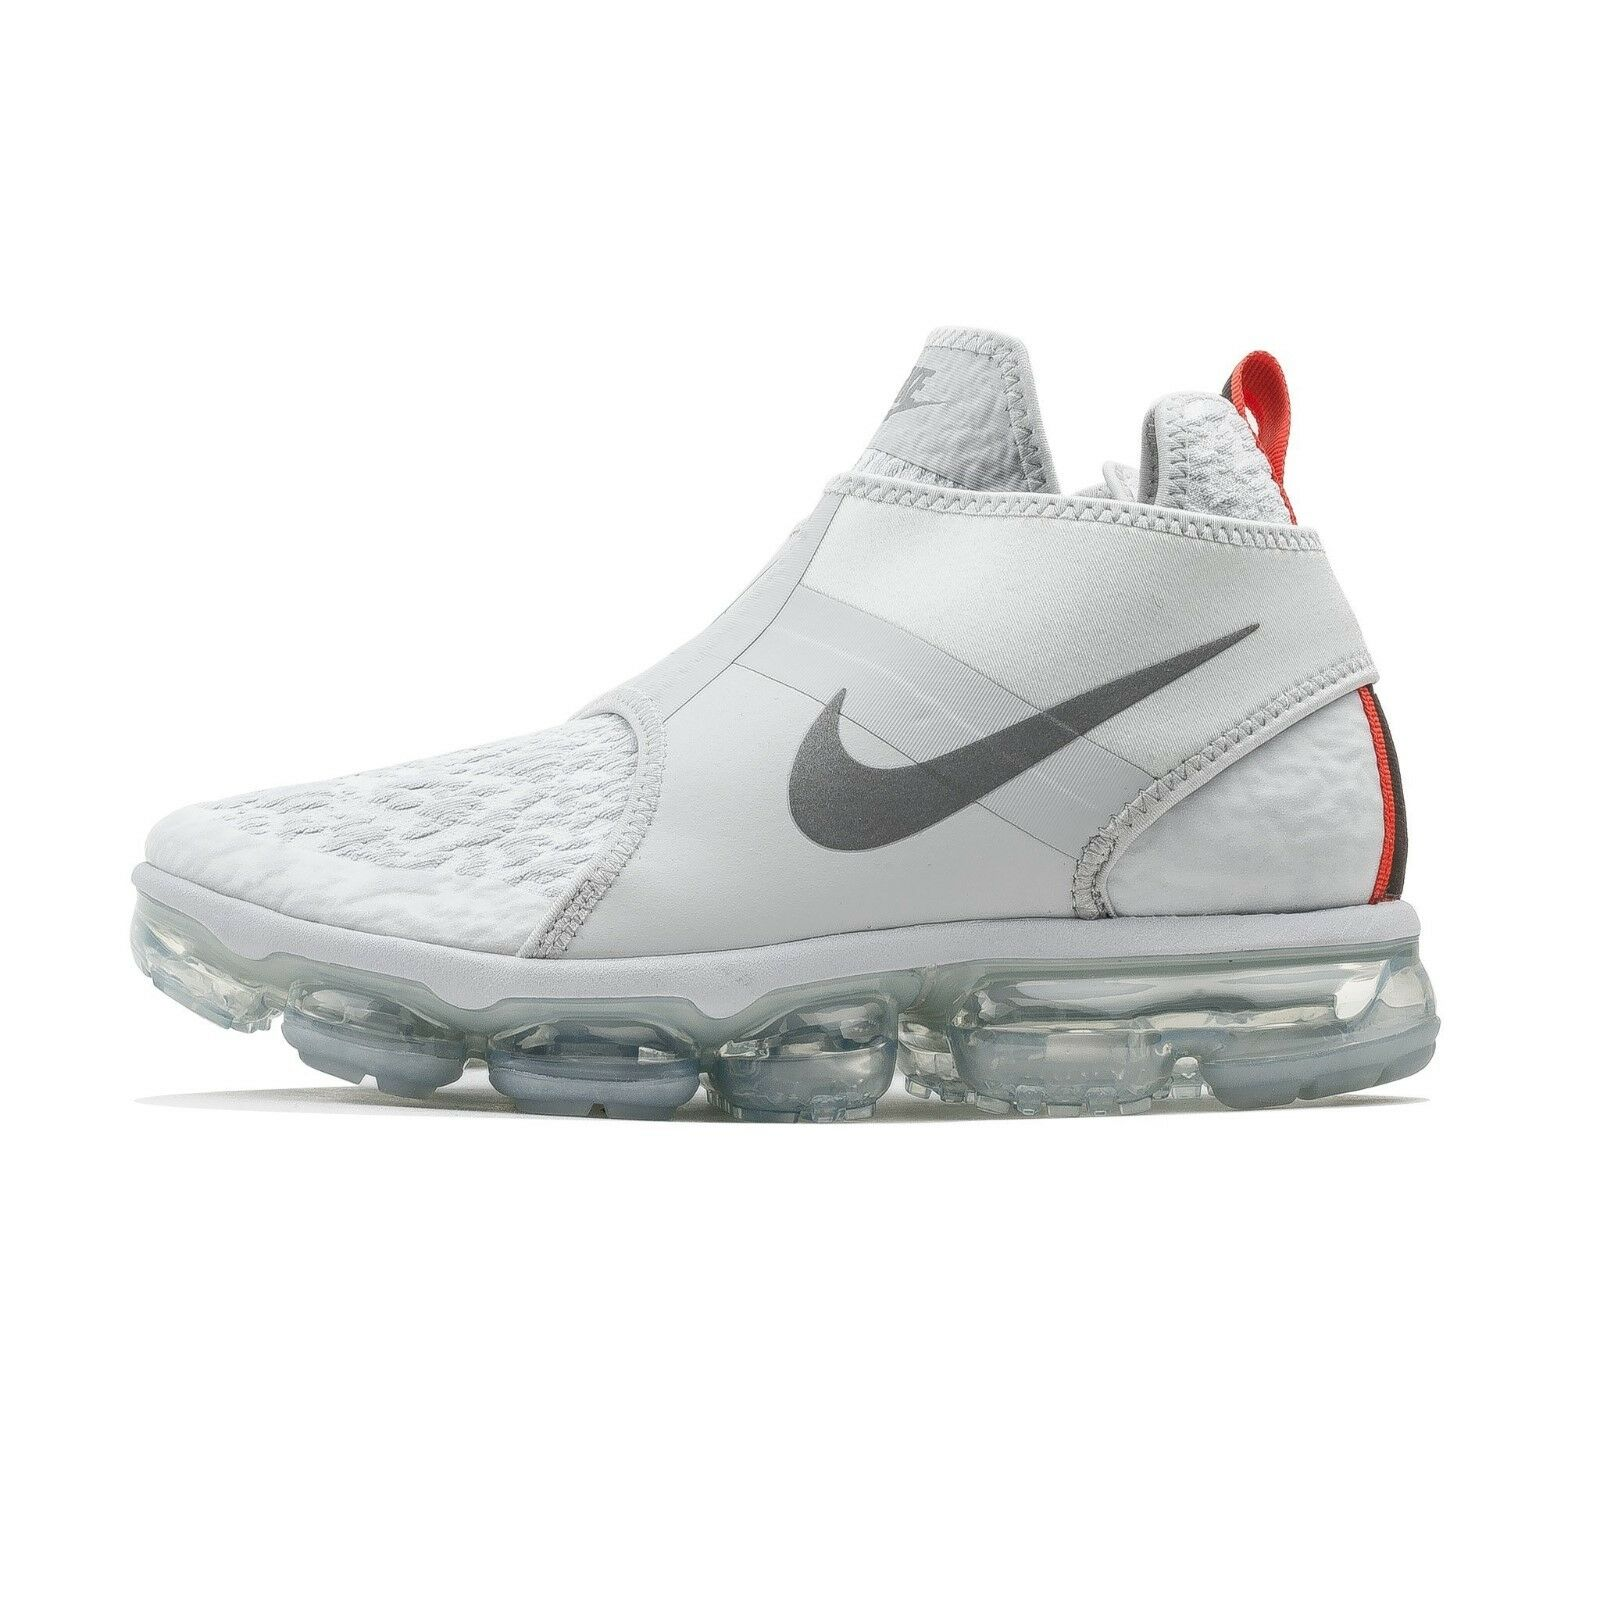 Nike Air VaporMax Chukka Slip White AO9326-001 NEW Athletic shoes Running